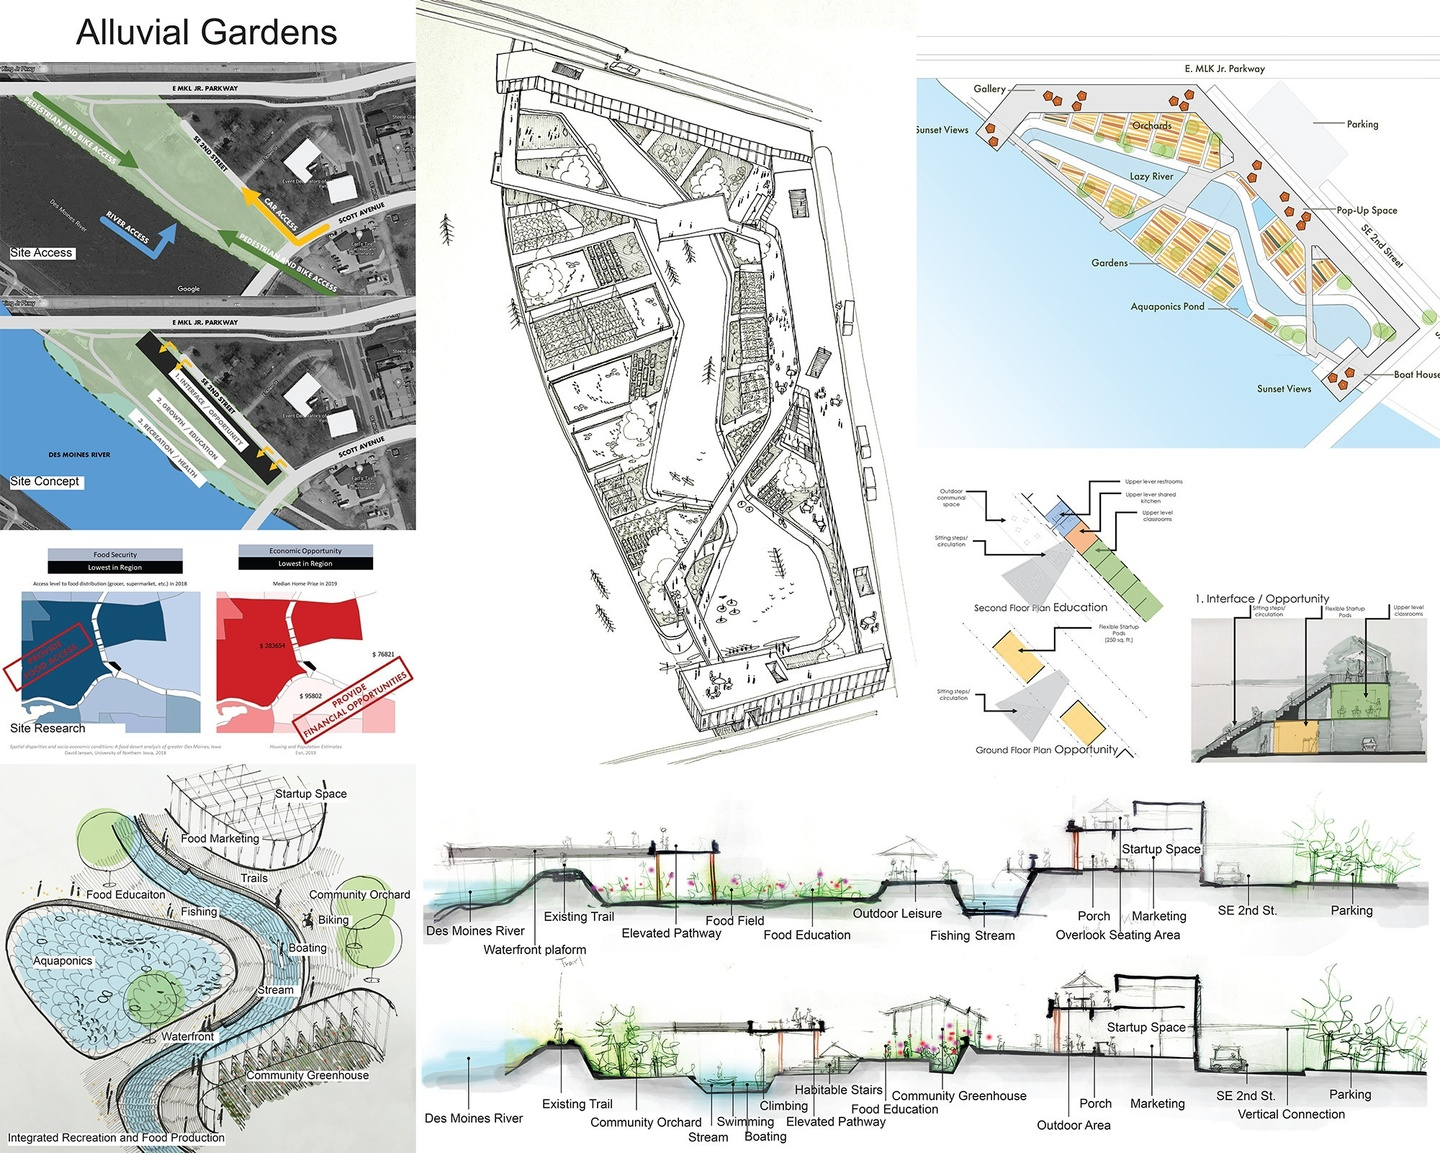 Proposal board for Alluvial Gardens, showing six different site plans.